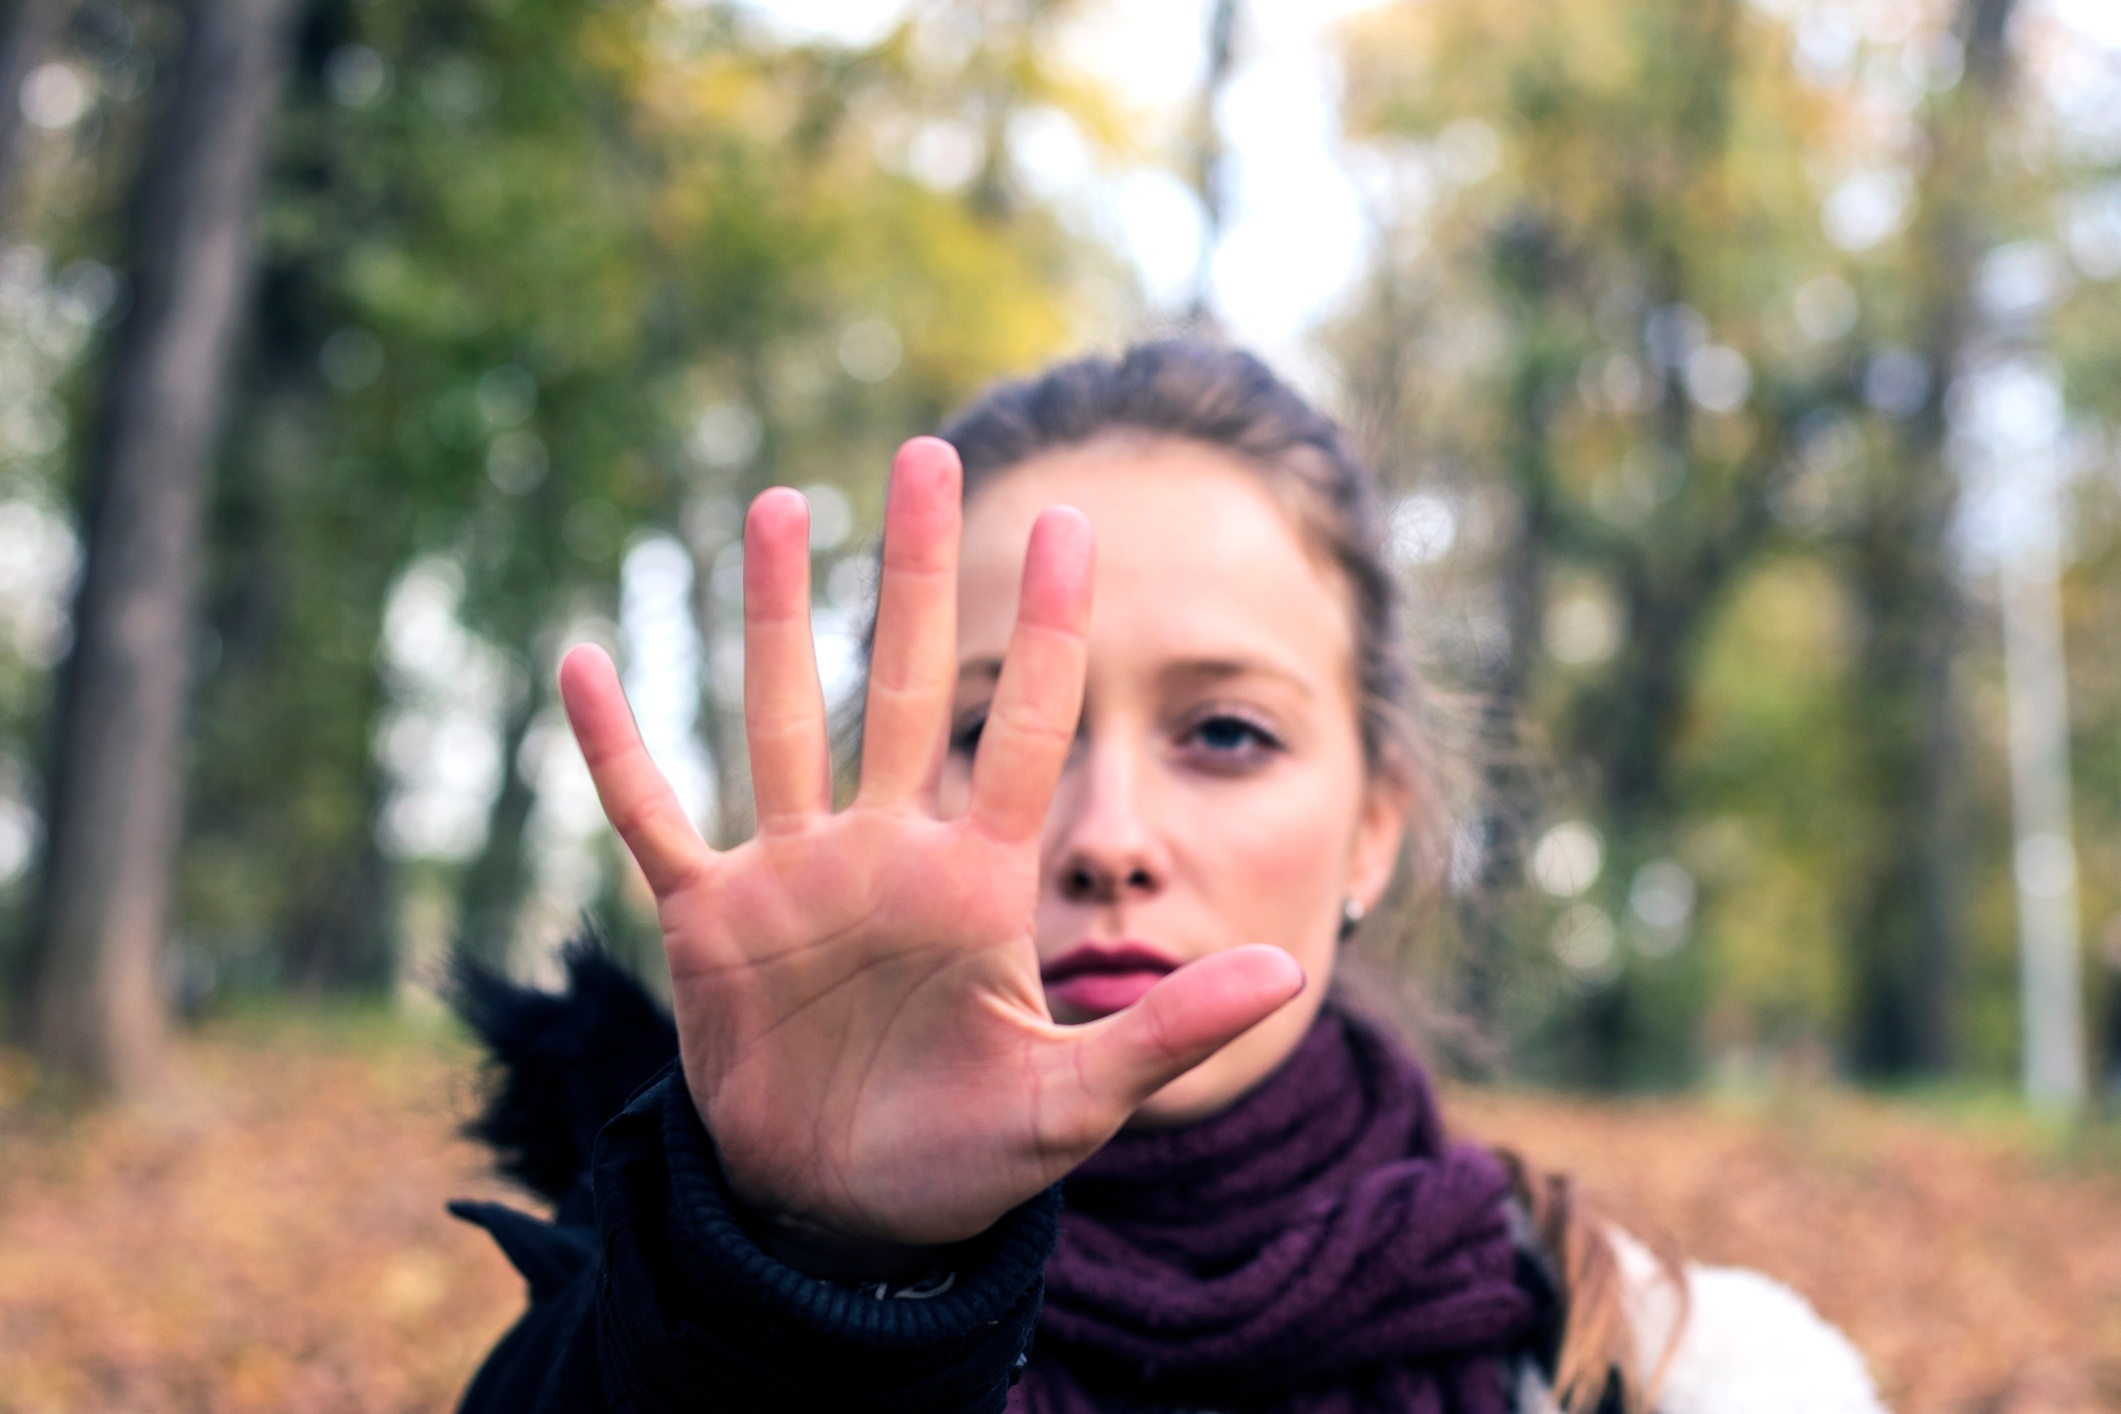 Protecting Yourself if a Relationship Turns Abusive